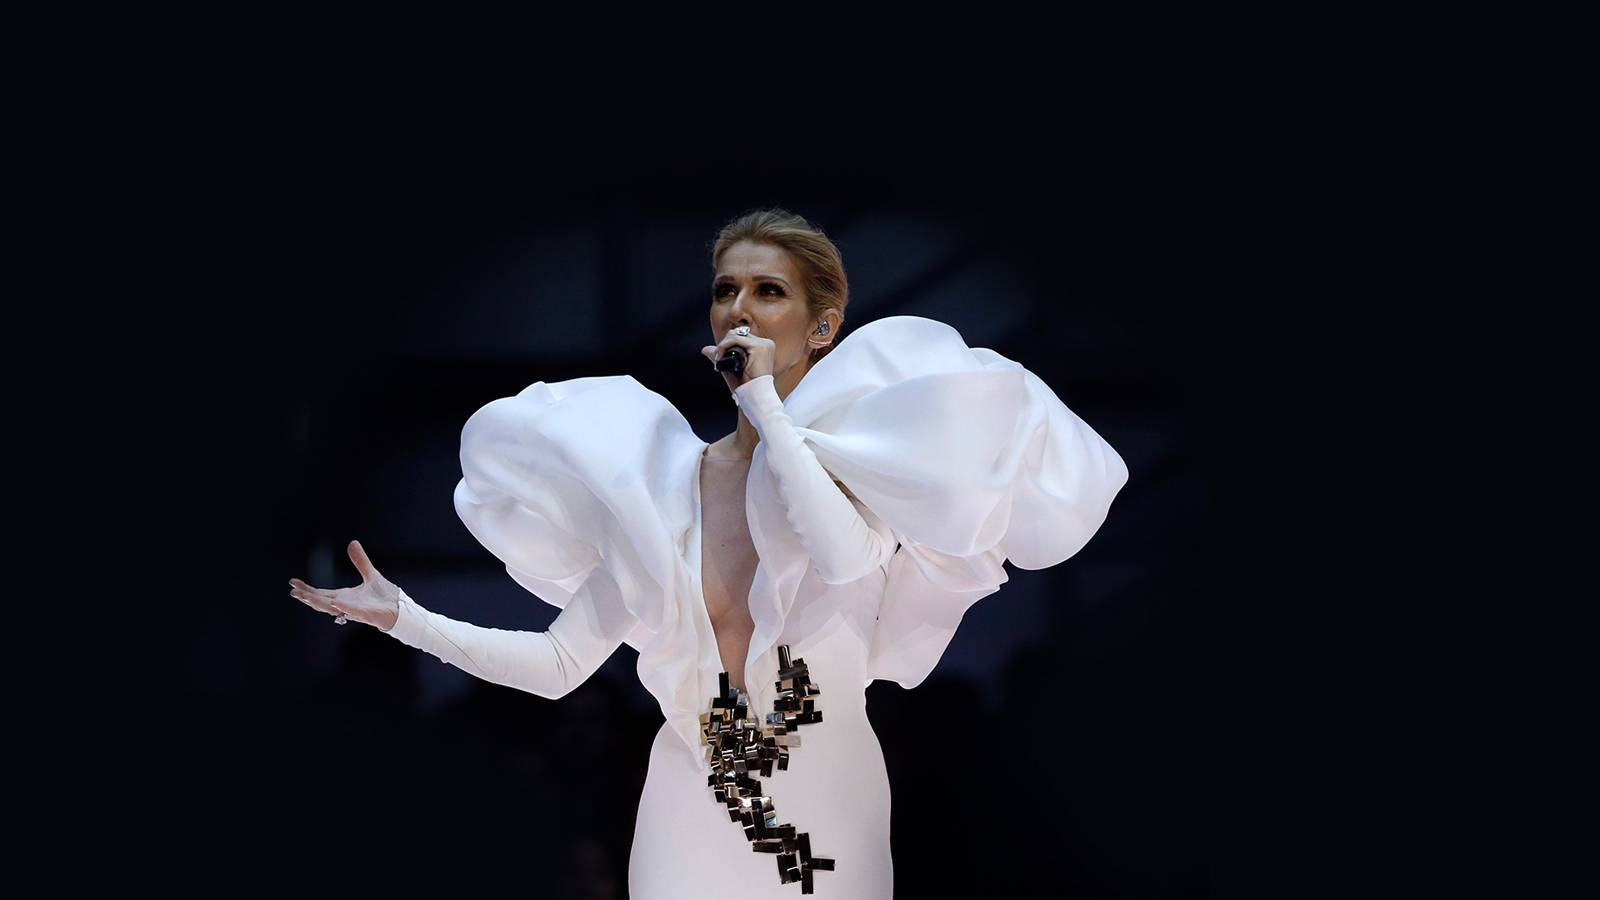 Celine Dion (Rescheduled from 3/11)